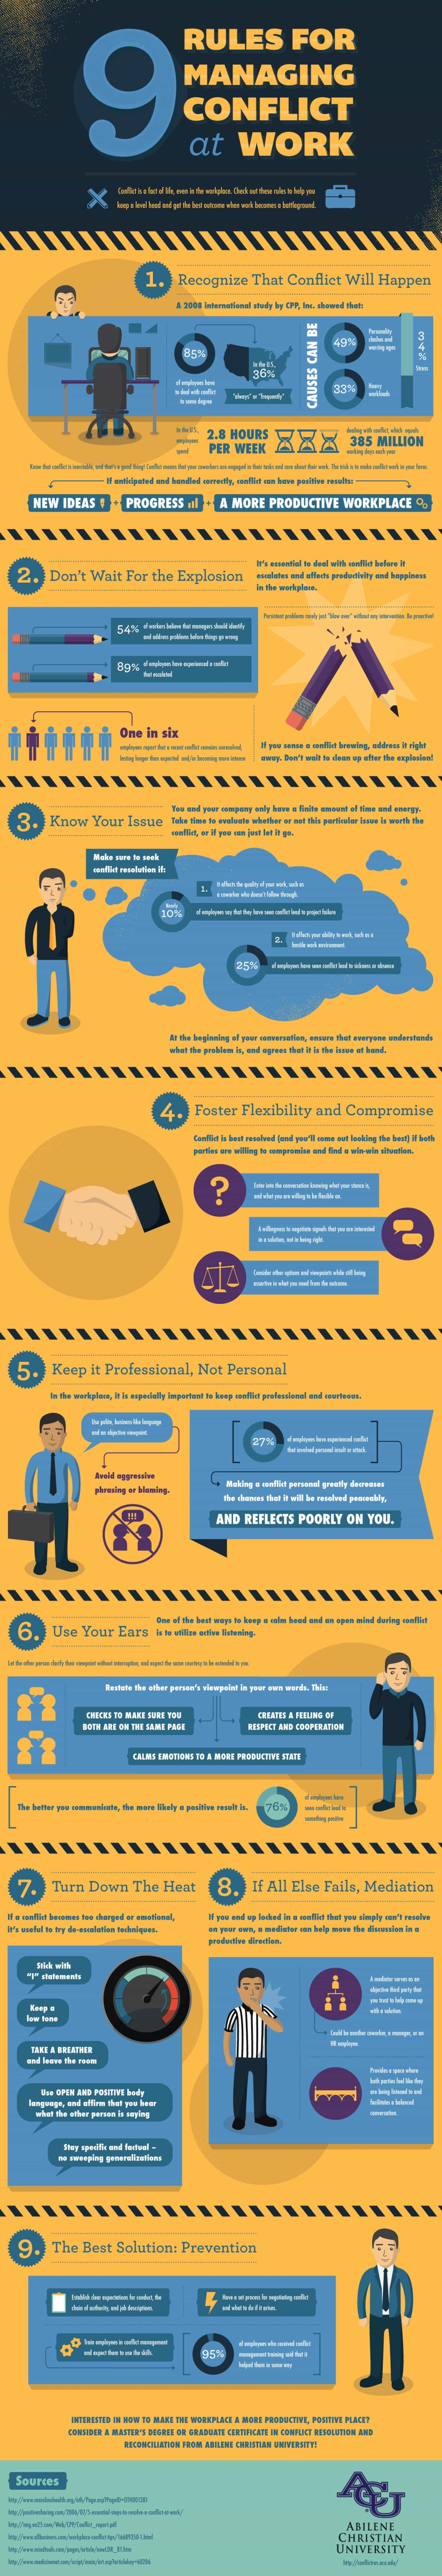 9-rules-for-managing-conflict-at-work